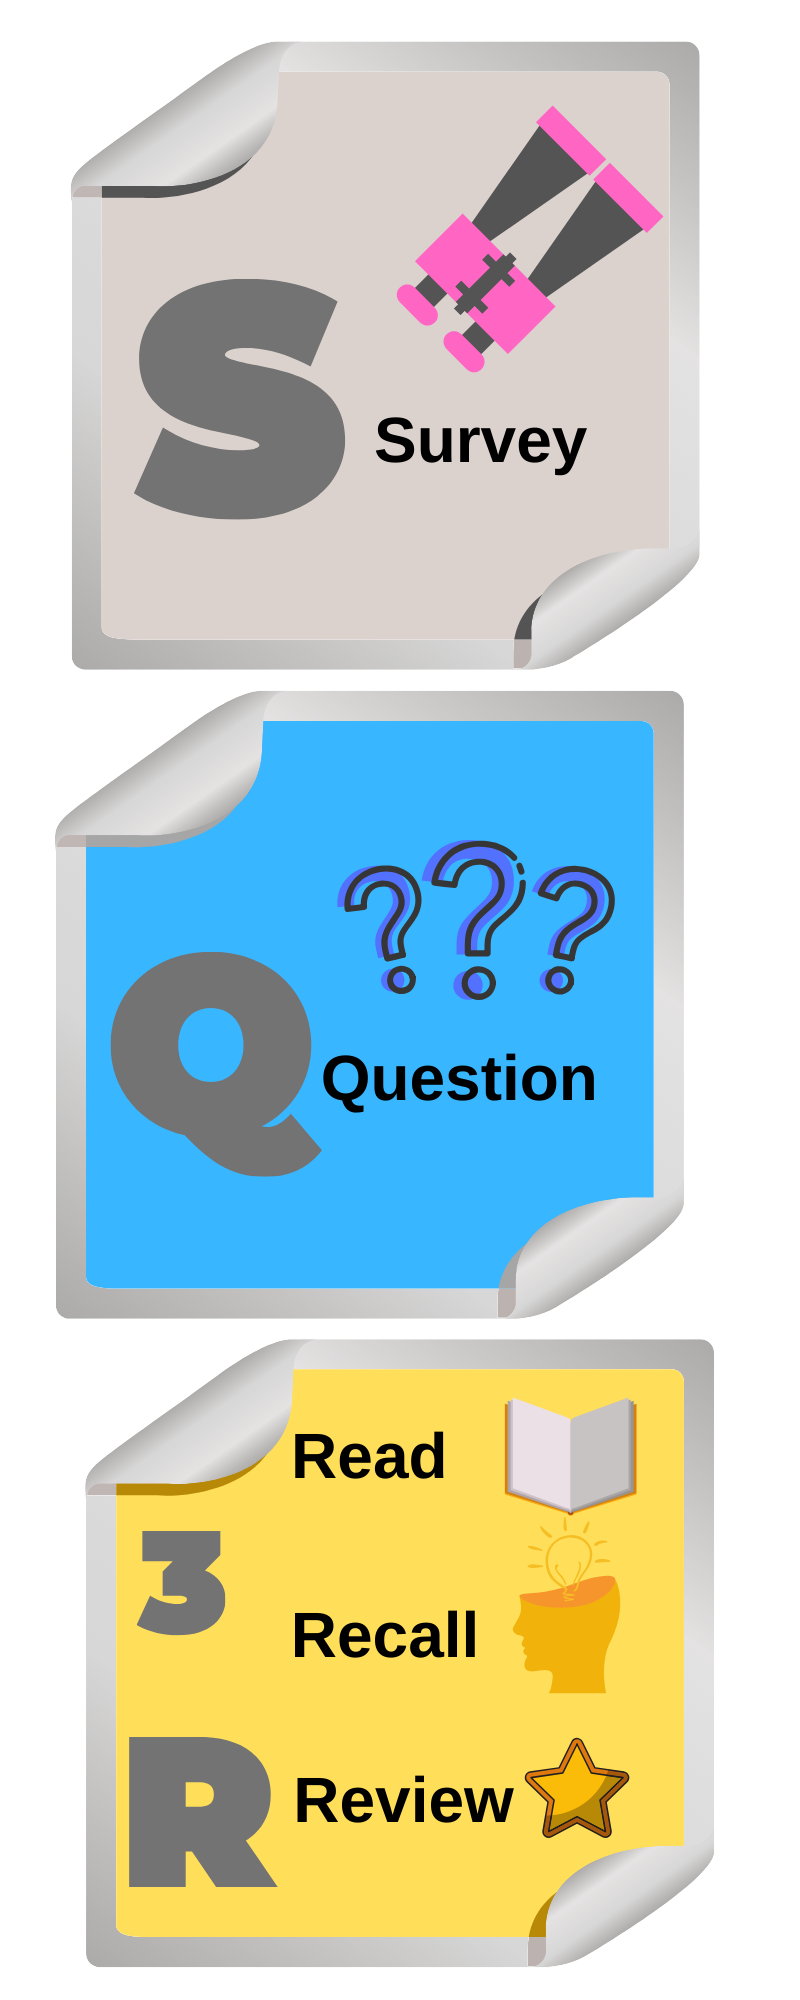 SQ3R technique for reading: Survey, Question, Read, Recall, Review.